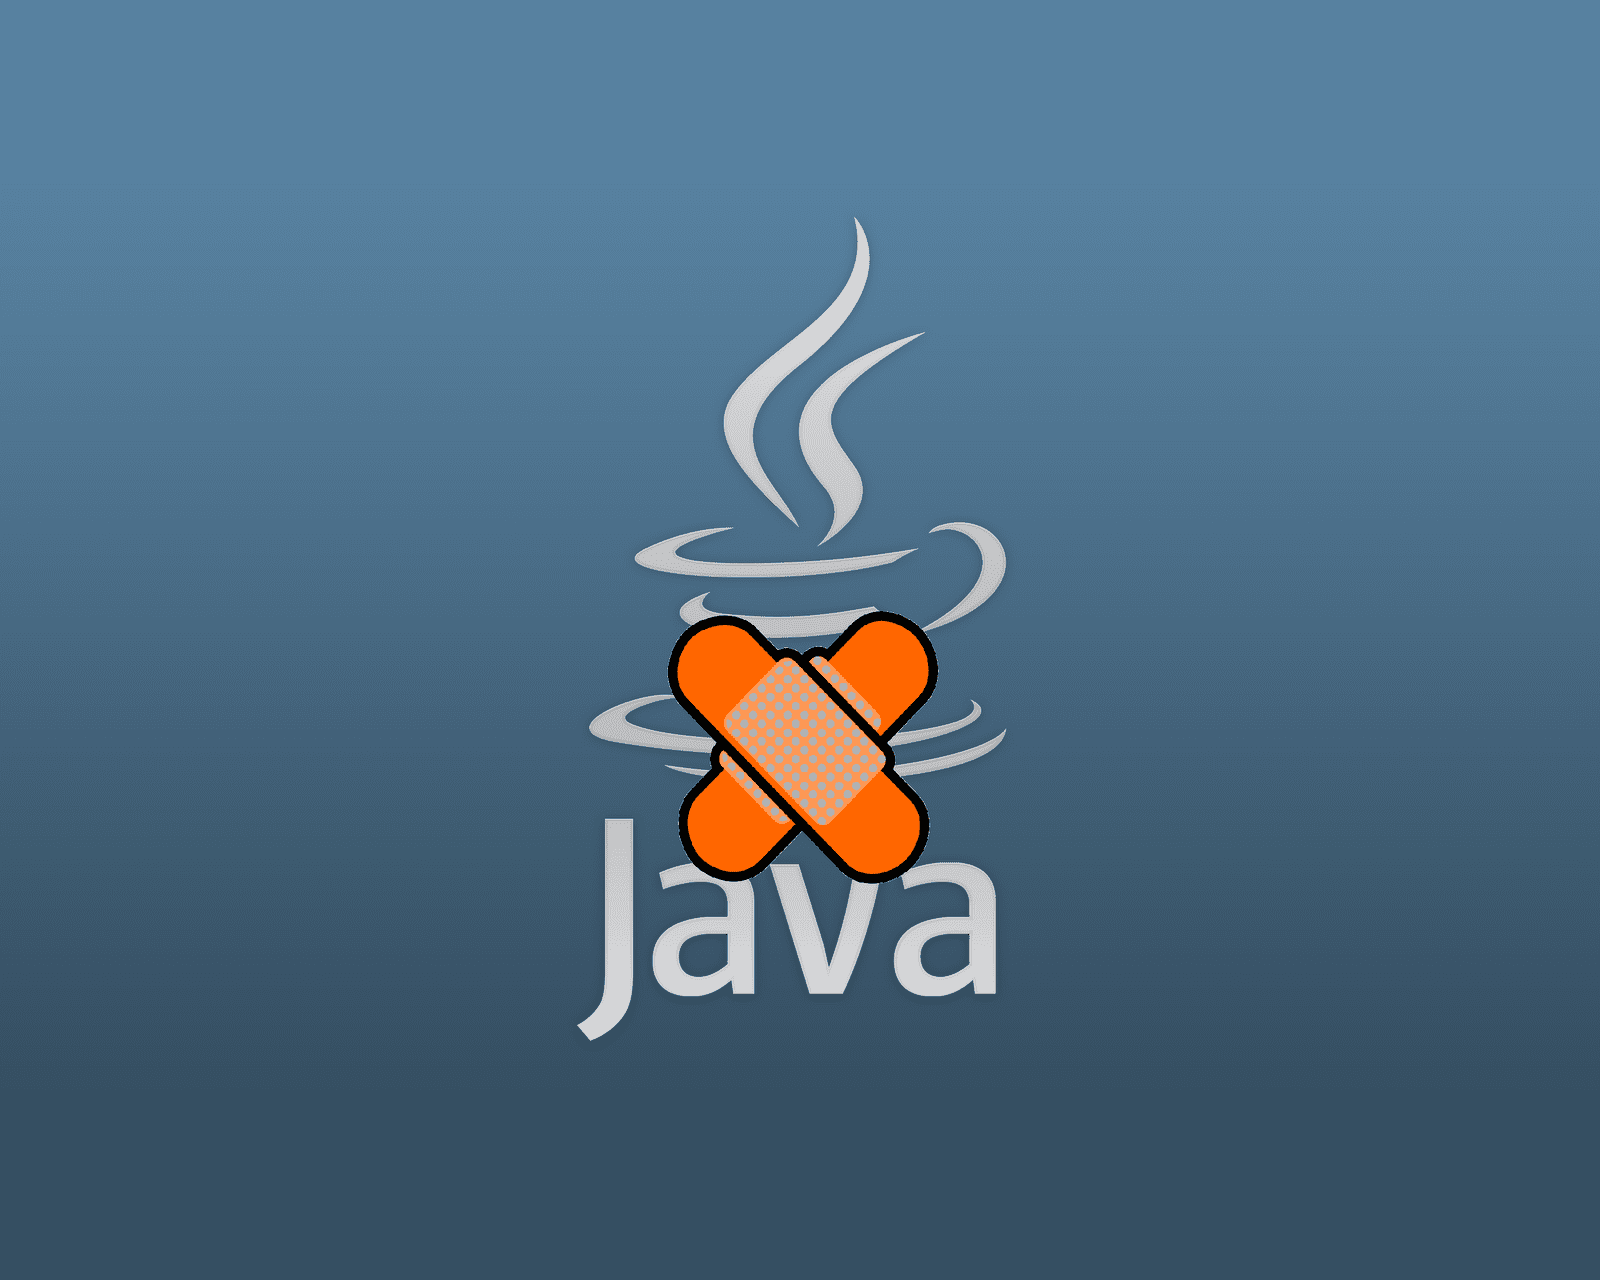 Oracle Released Emergency Update to Patch Java 0day